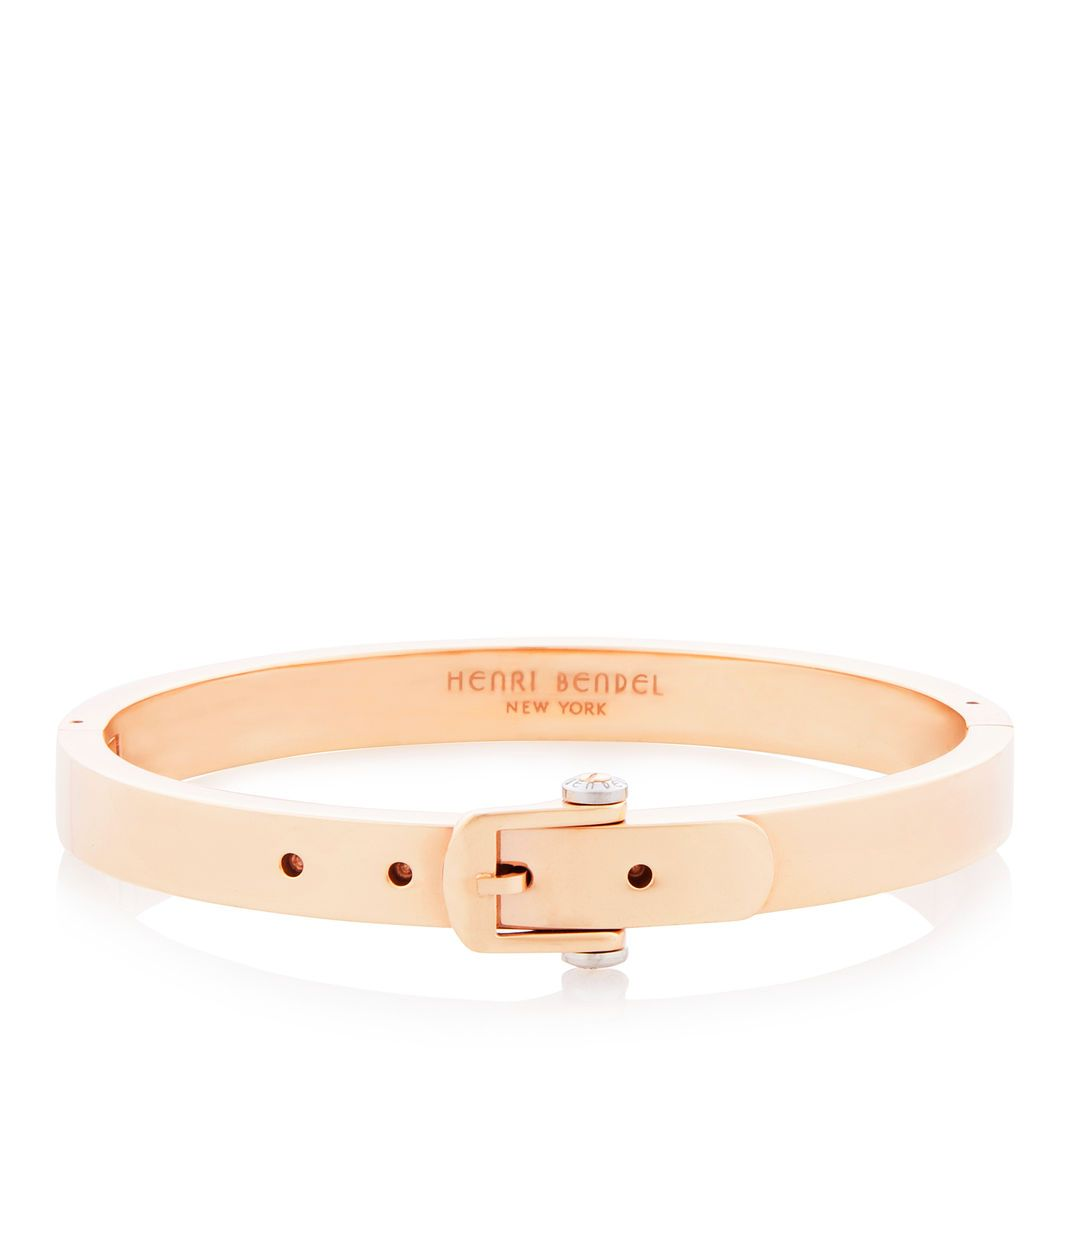 Buckle Up Baby Bangle Sale Henri Bendel All The Pretty Things